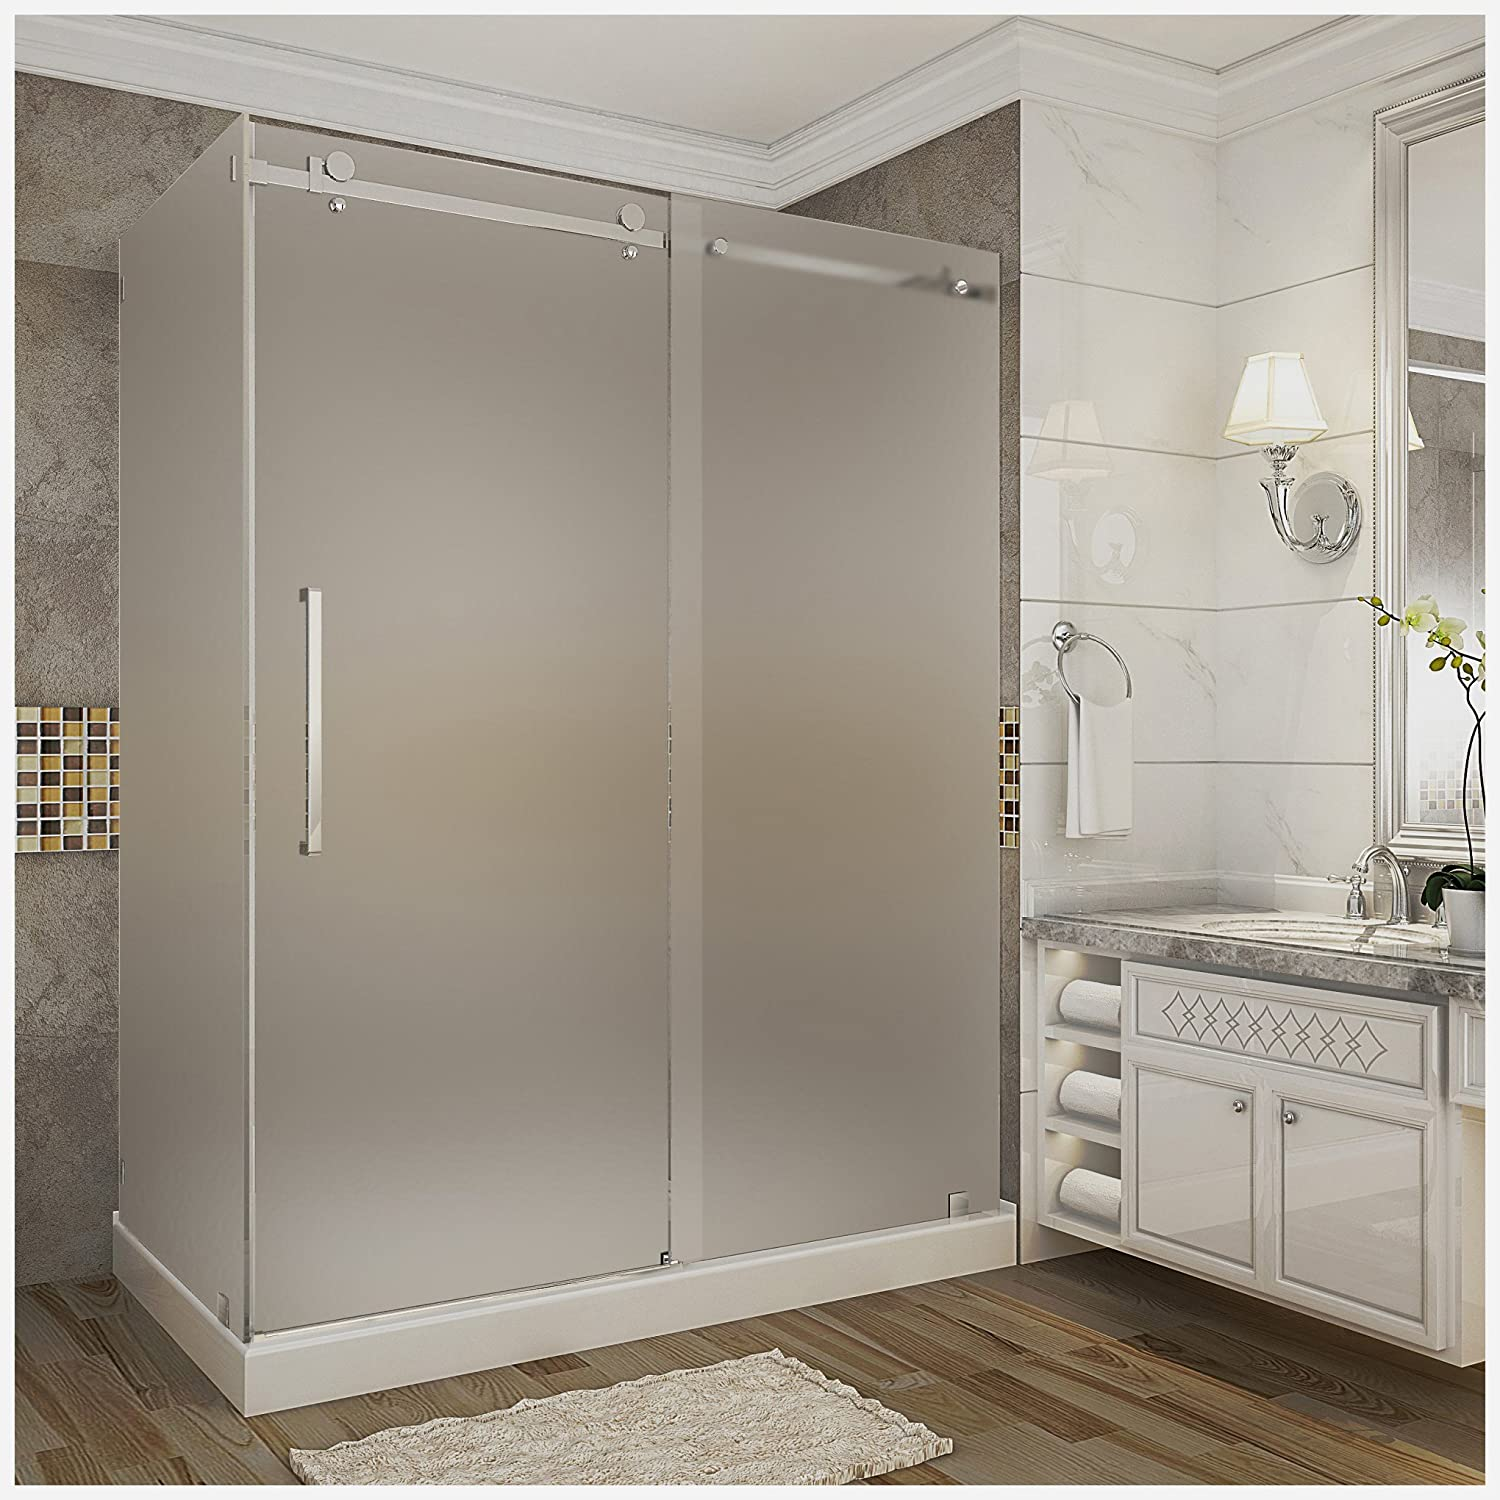 """chic Aston SEN976F-TR-CH-60-10-L Moselle Completely Frameless Frosted Glass Sliding Shower Door Enclosure in Chrome Finish with Base and Left Drain, 60"""" x 35"""" x 77.5"""""""